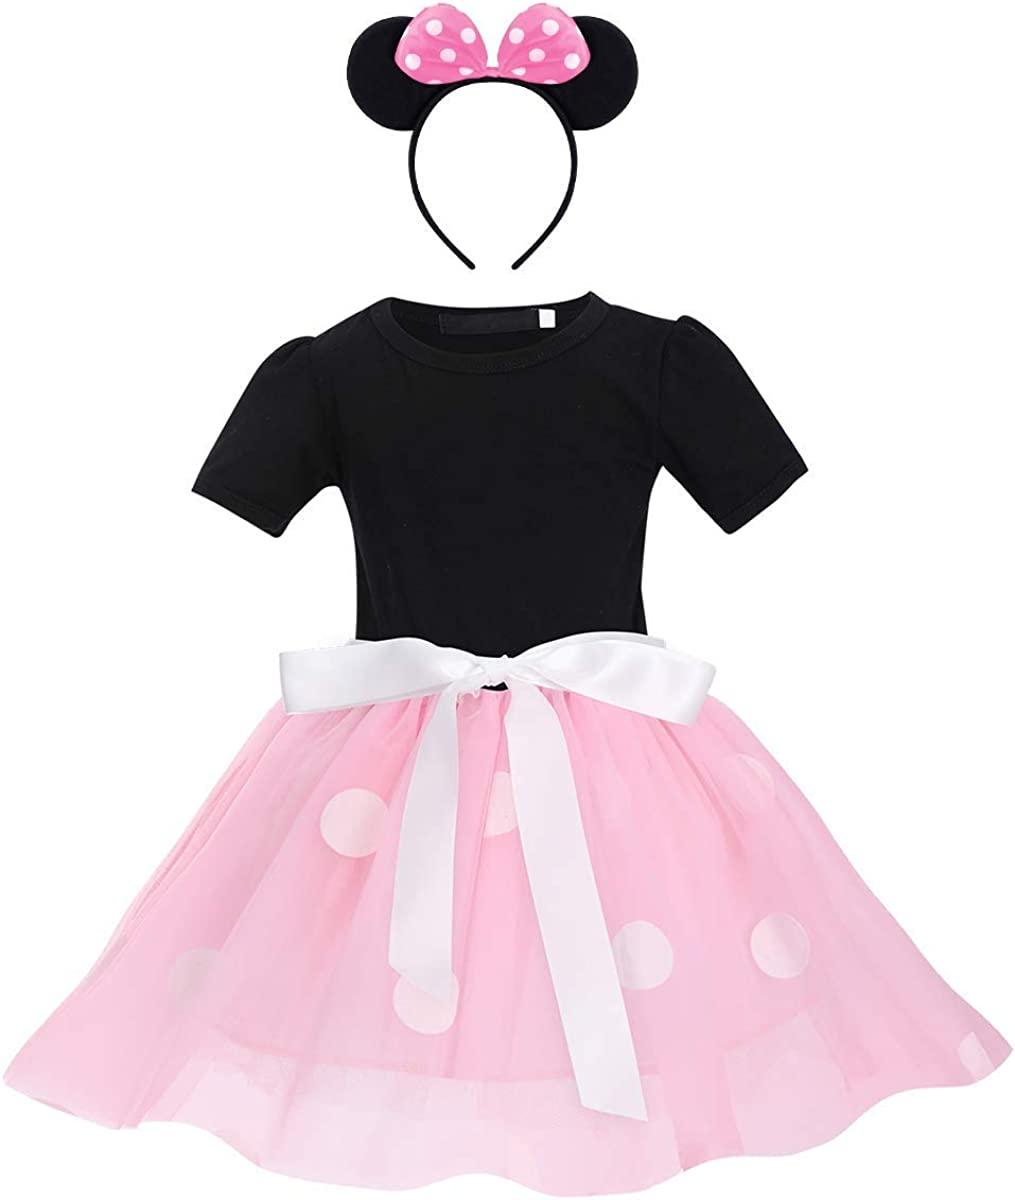 Mouse Ears Headband Princess Cosplay Birthday Party Fancy Dress Up Outfit Toddler Infant Christmas Halloween Carnival Pageant Clothes Photo Shoot for Kid Minnie Costume Baby Girls Polka Dots Dresses